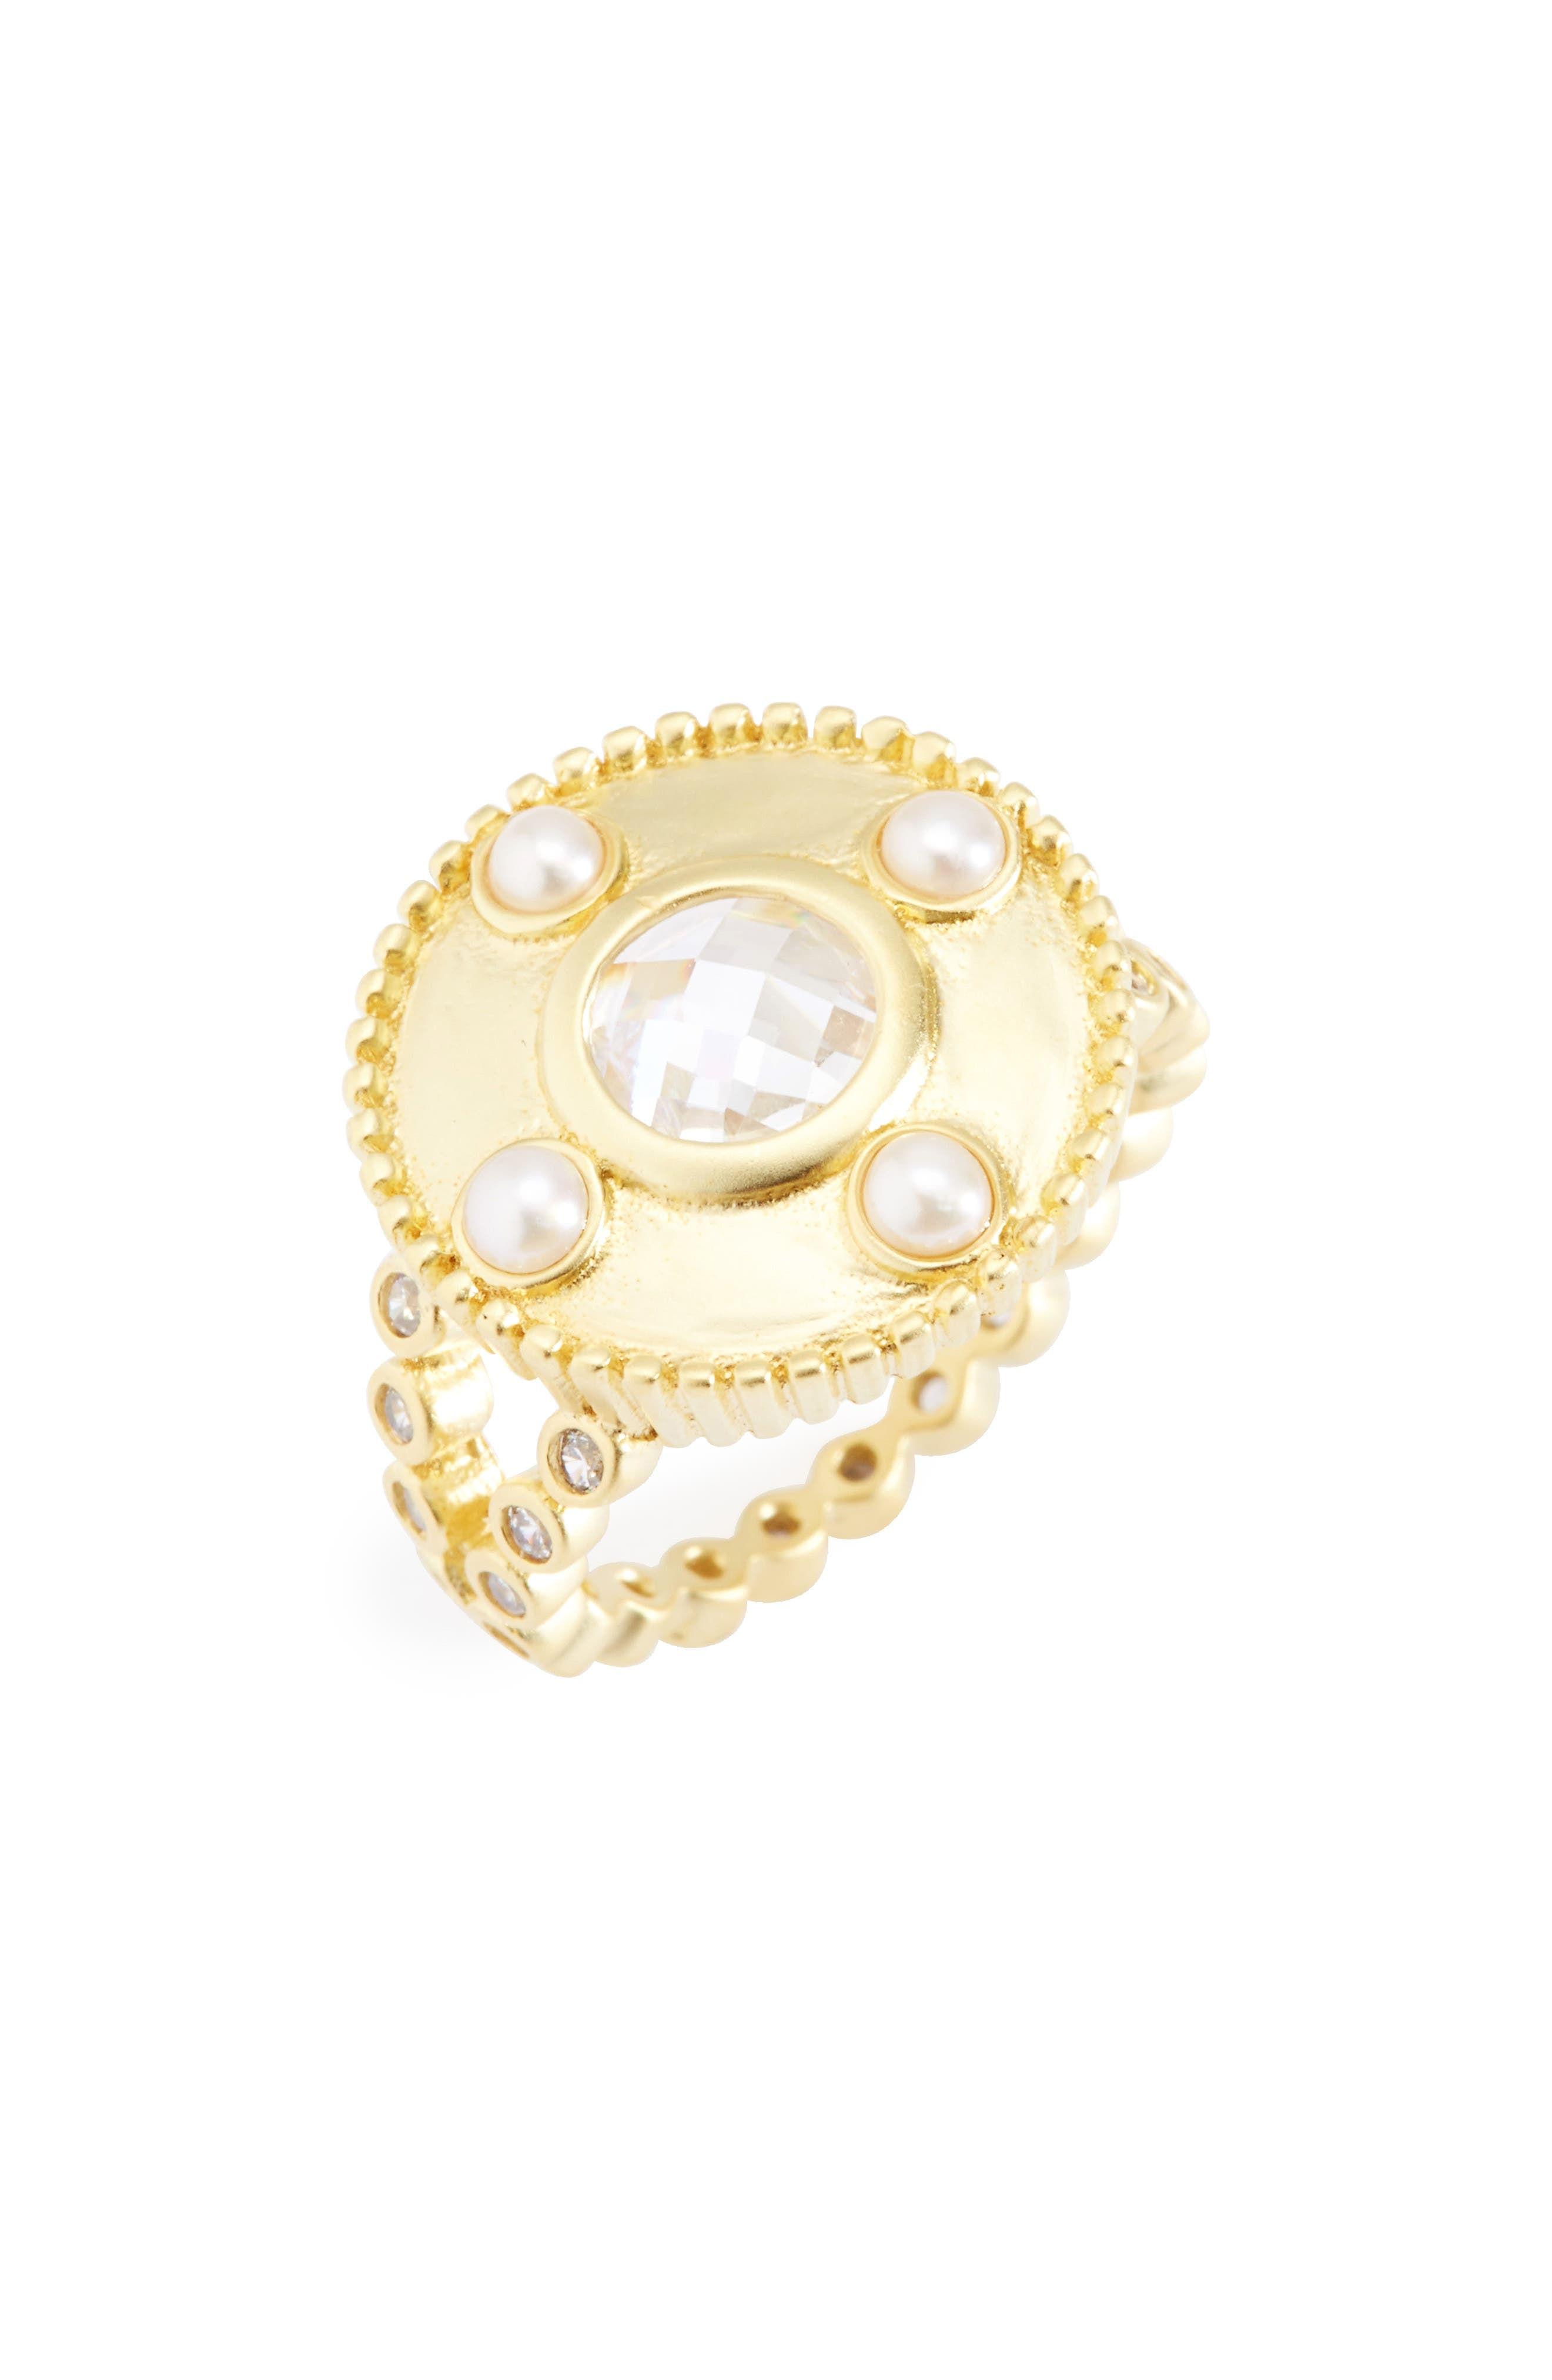 Audrey Studded Cocktail Ring,                             Main thumbnail 1, color,                             Gold/ Clear